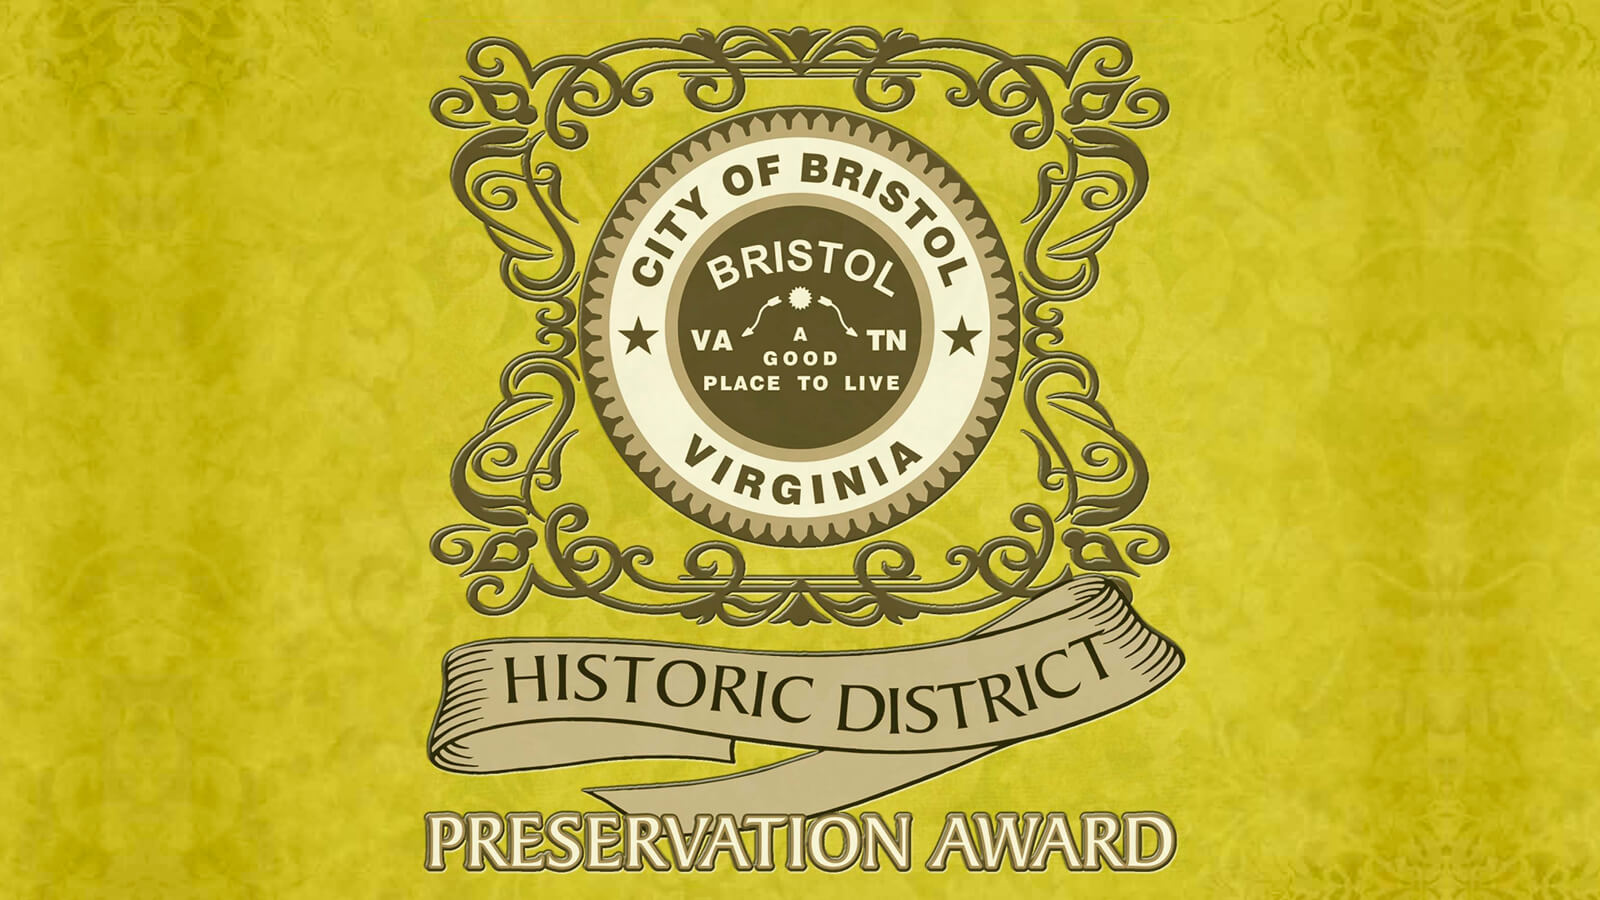 Bristol Virginia Historic District Preservation Award Committee ...